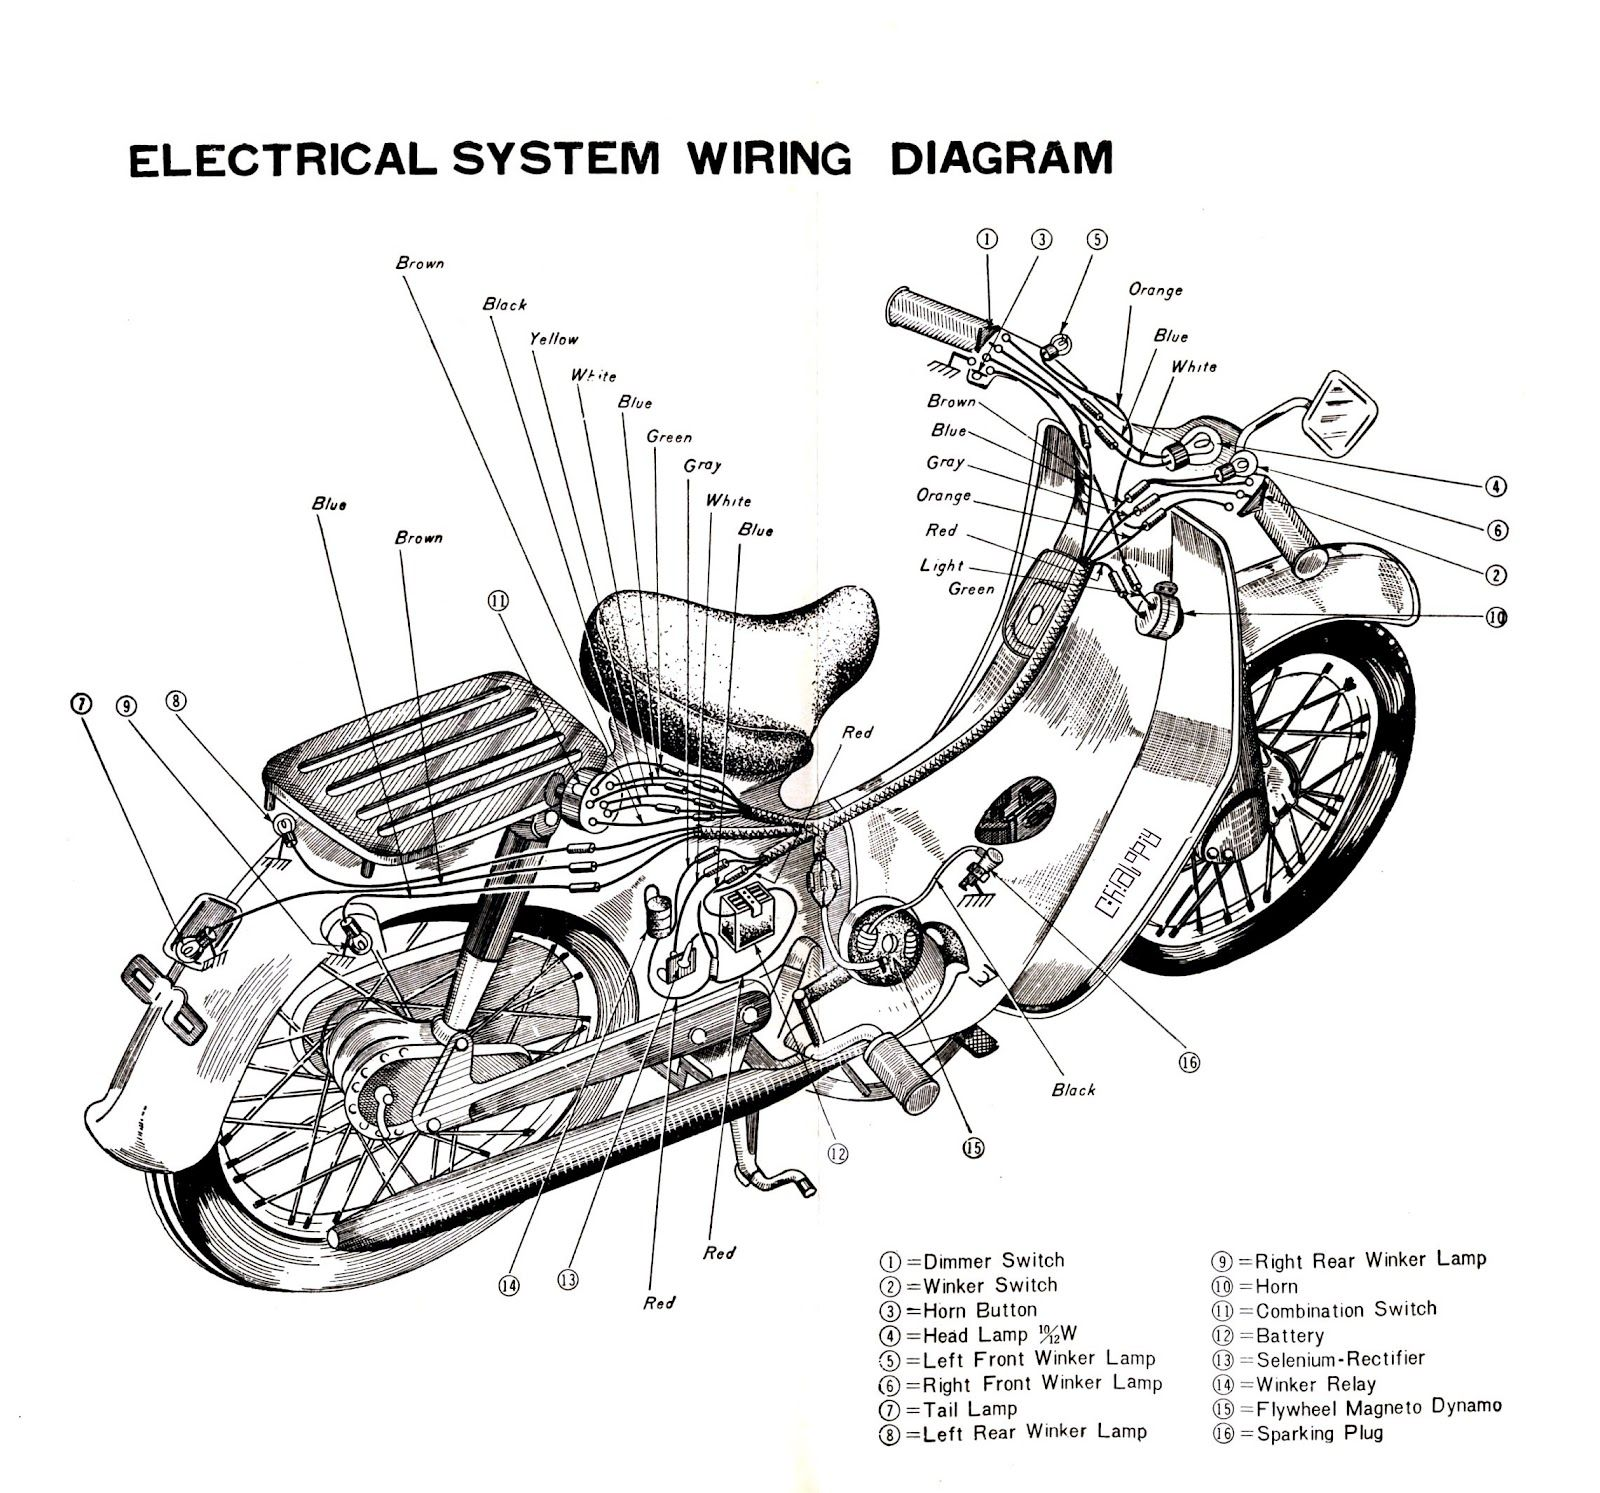 Super Club Electric Wiring Diagram Cub Project Pinterest Honda For Motorized Bicycle Vintage Motorcycles Cool Motorcycle